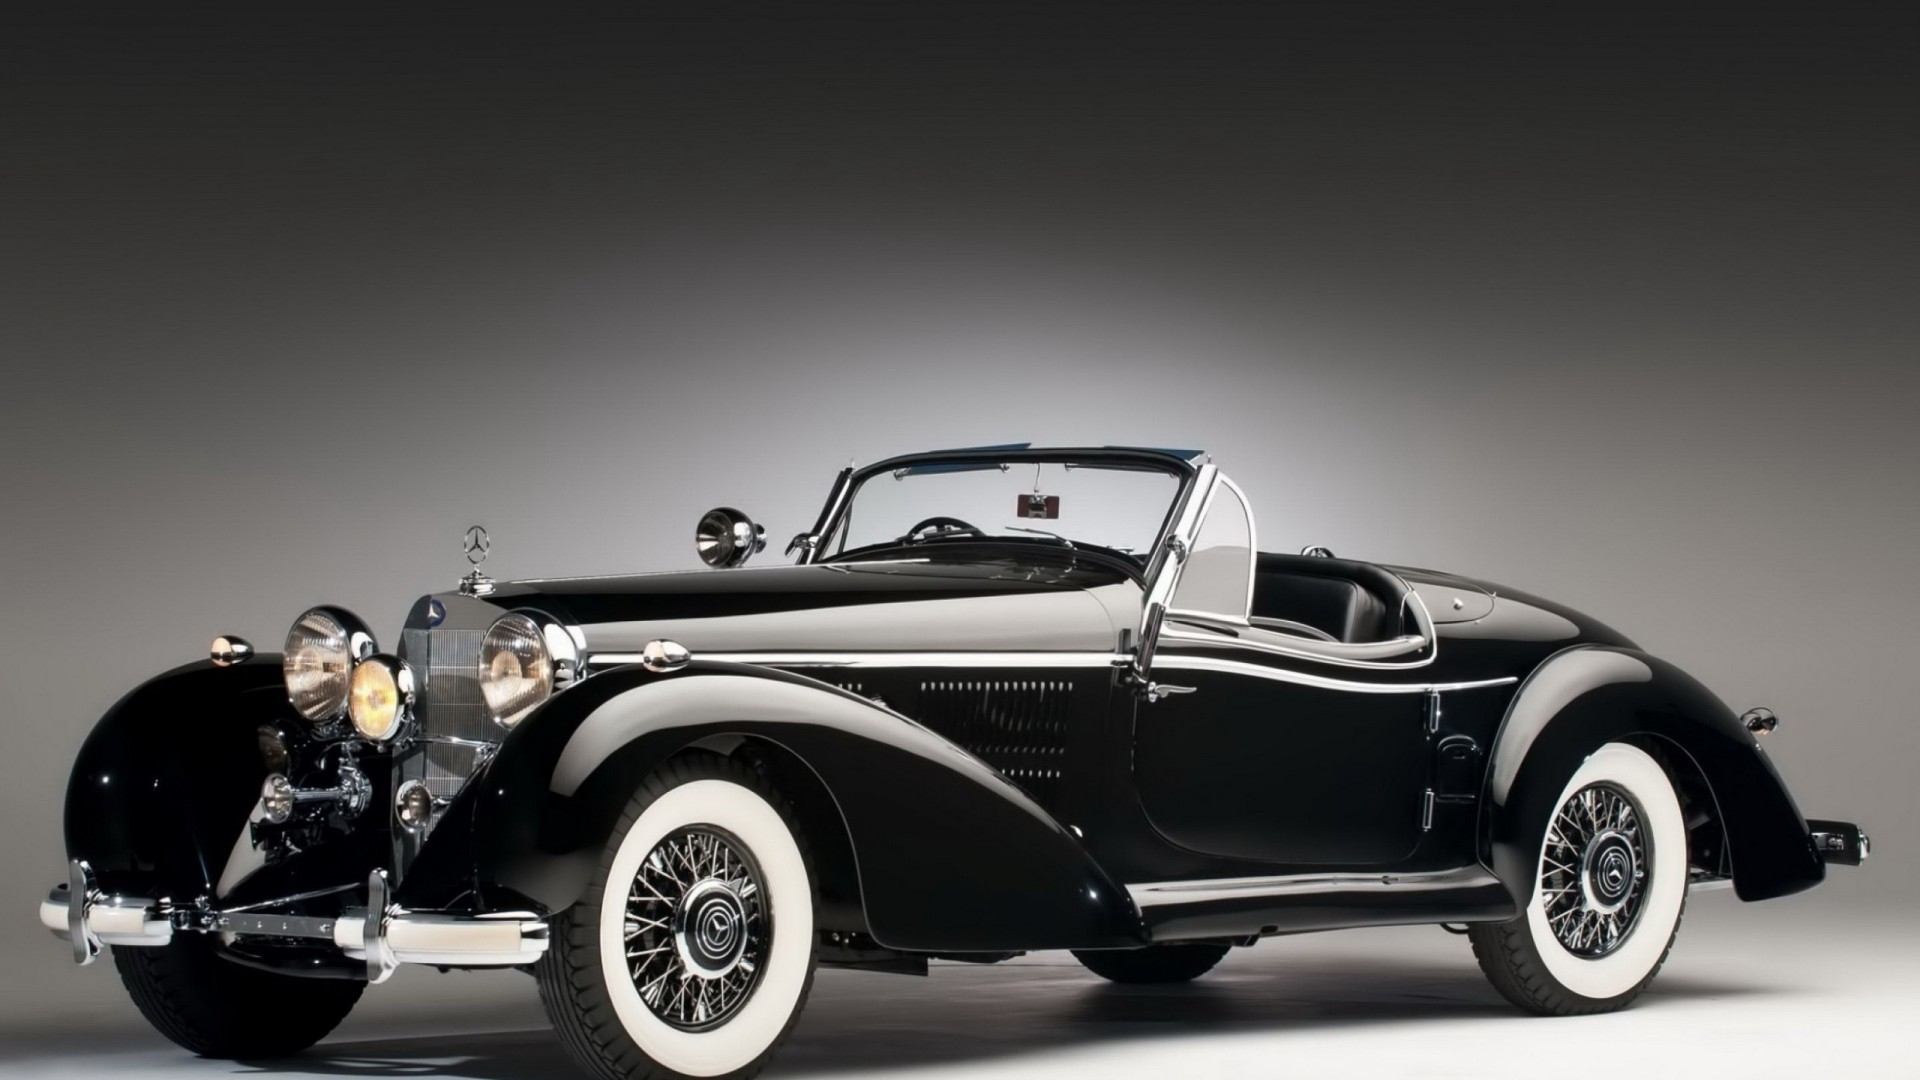 Classic Car Pictures Wallpaper 70 Images